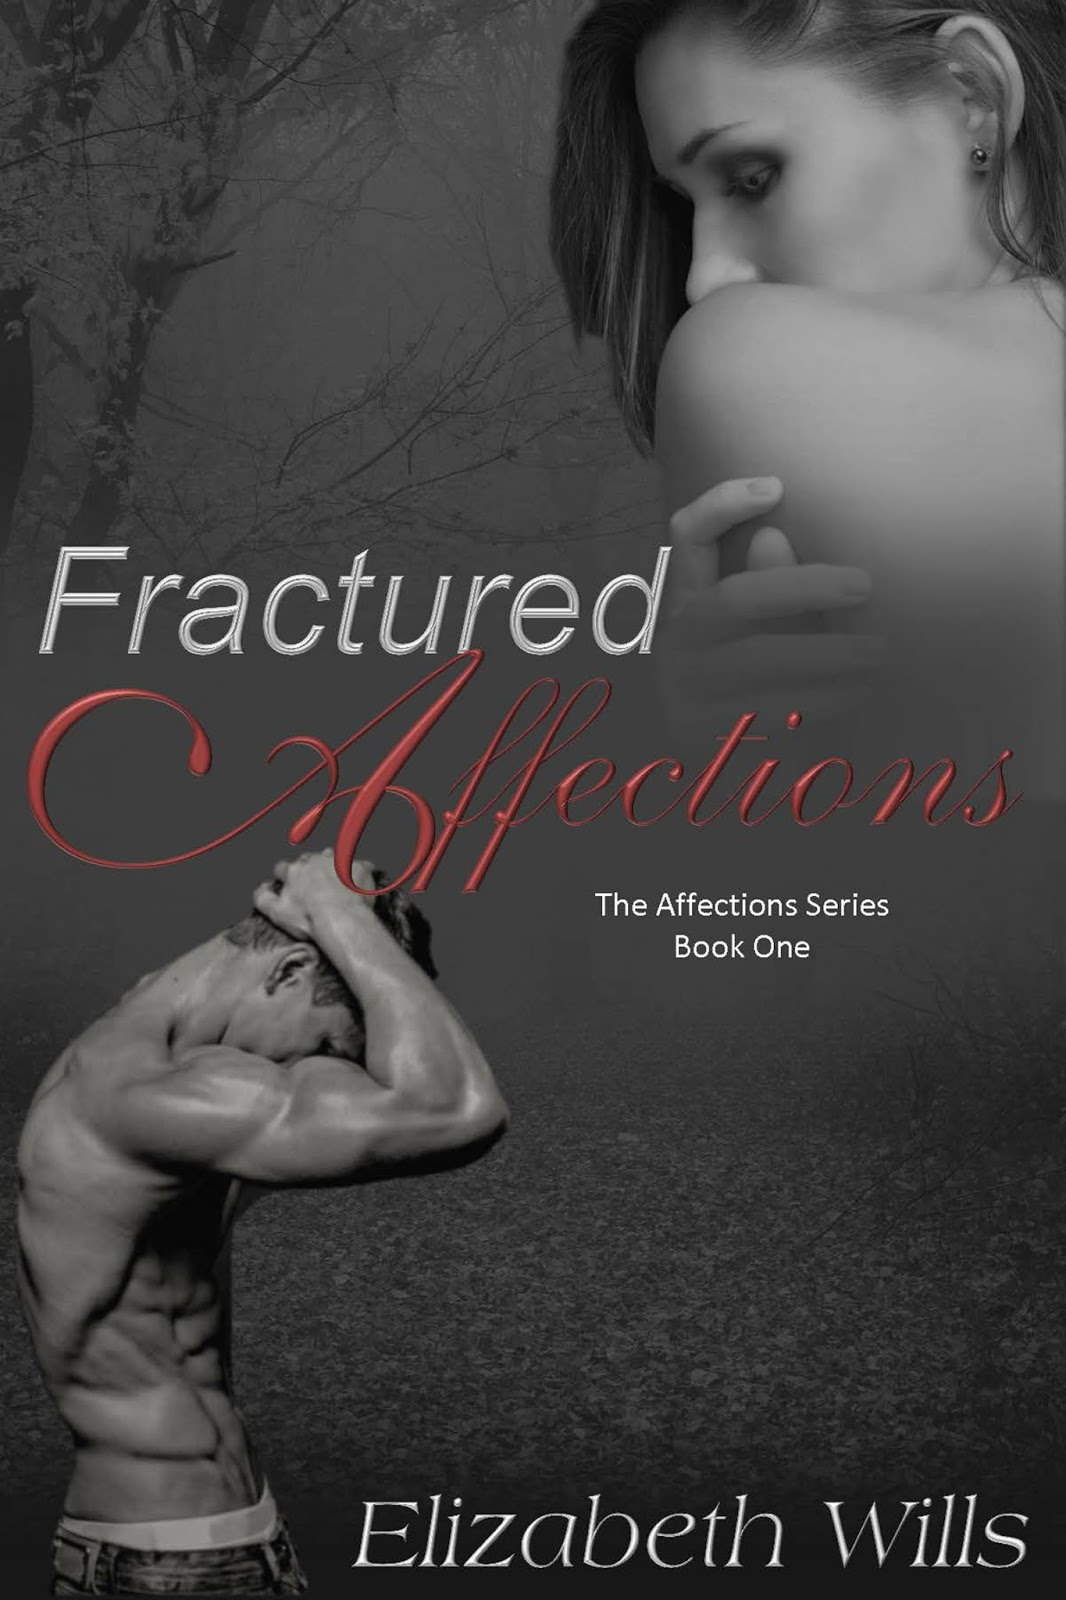 Title: Fractured Affections